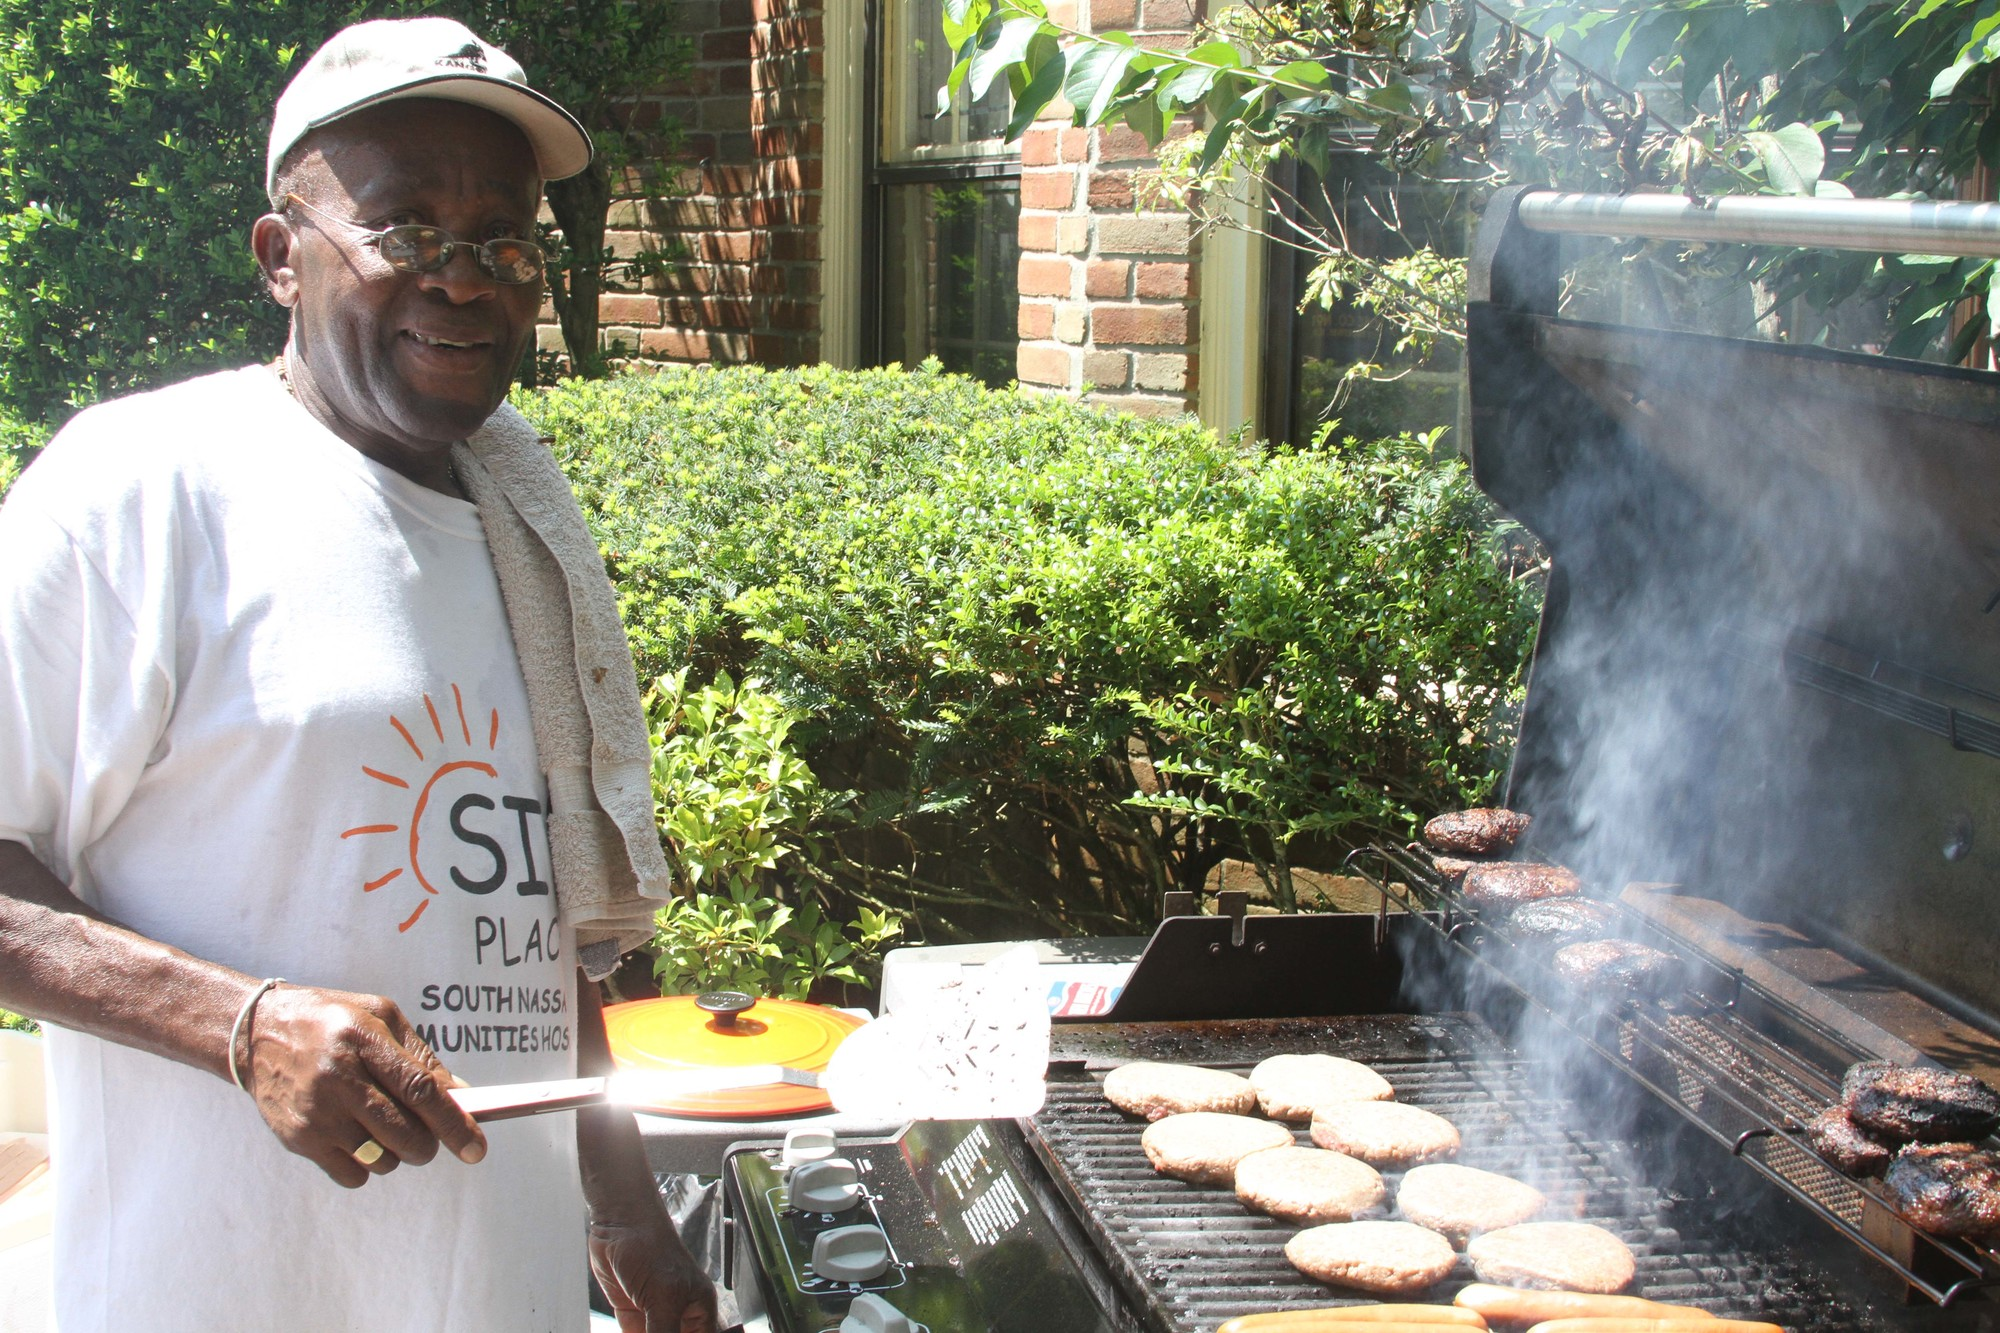 Cyrif Melville served as the day�s chef and grilled plenty of hamburgers and hot dogs for everyone.